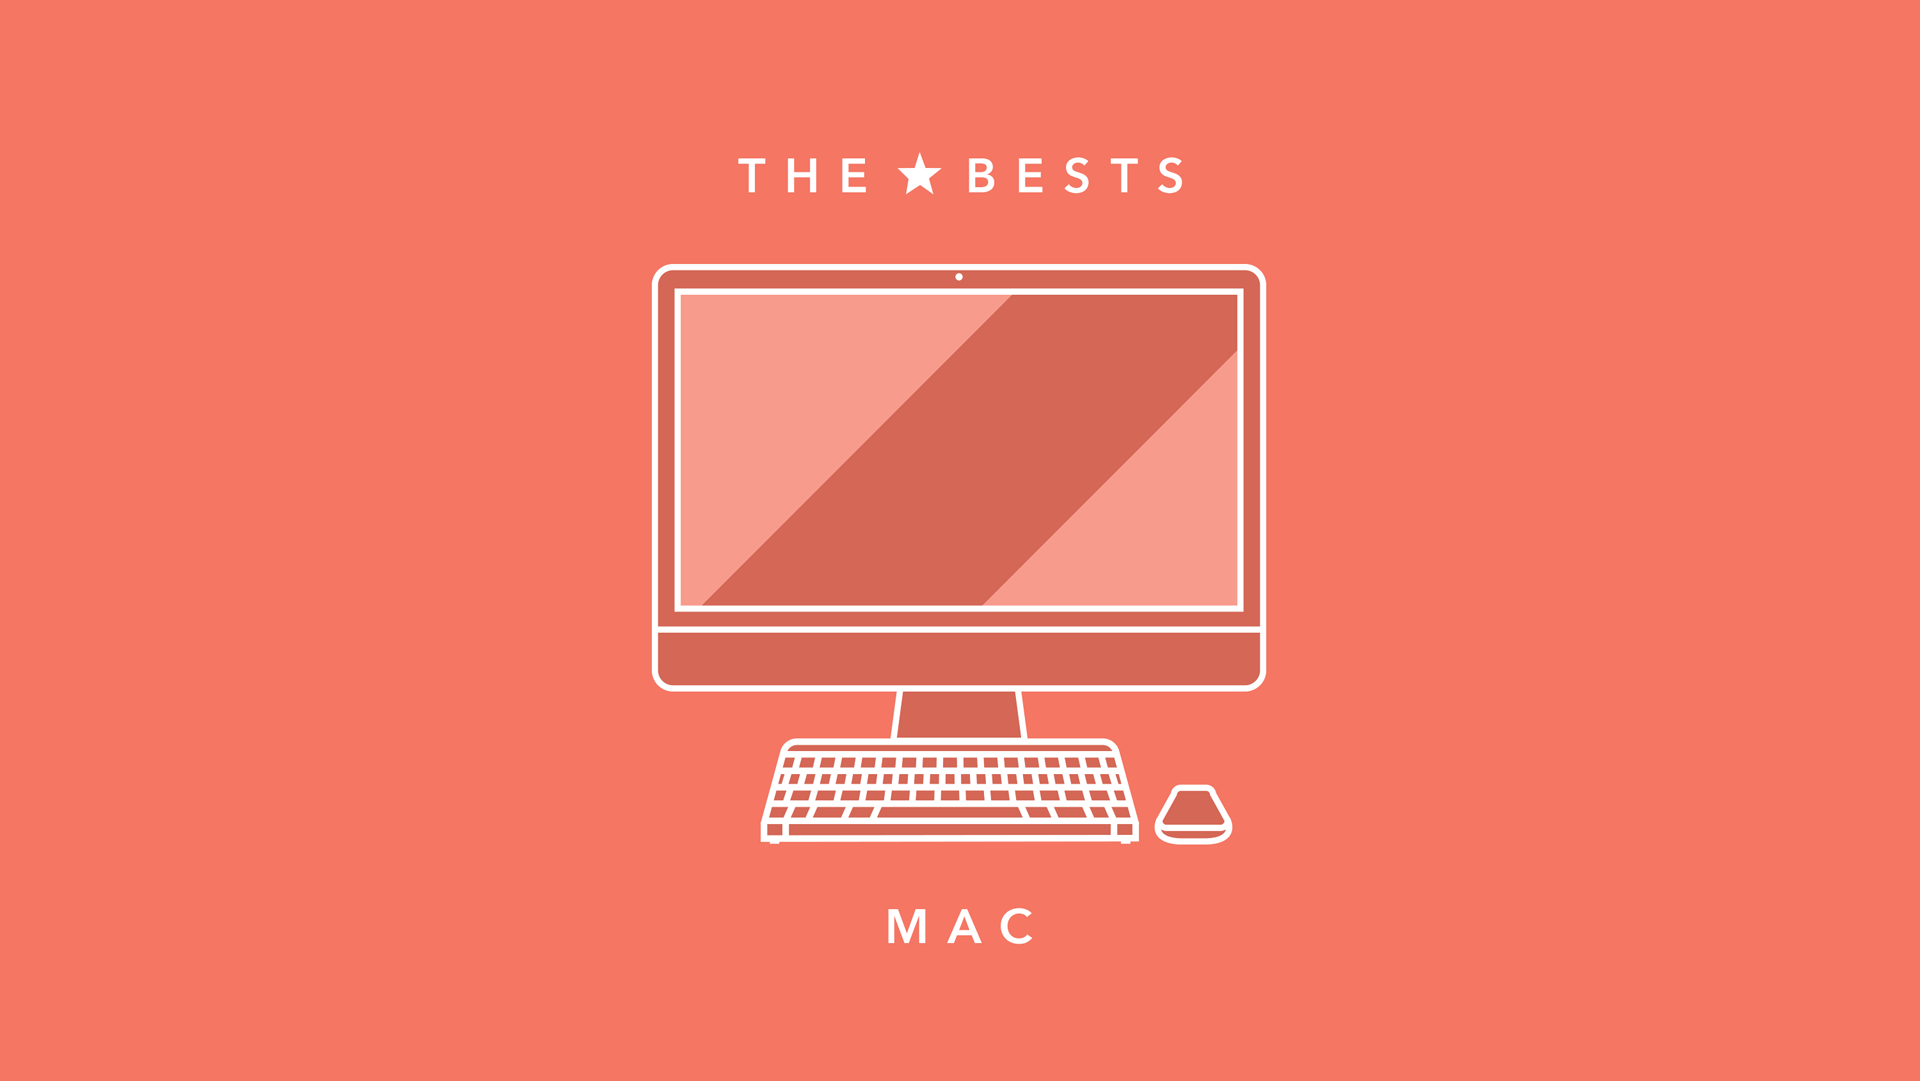 The 12 Best Games For Mac